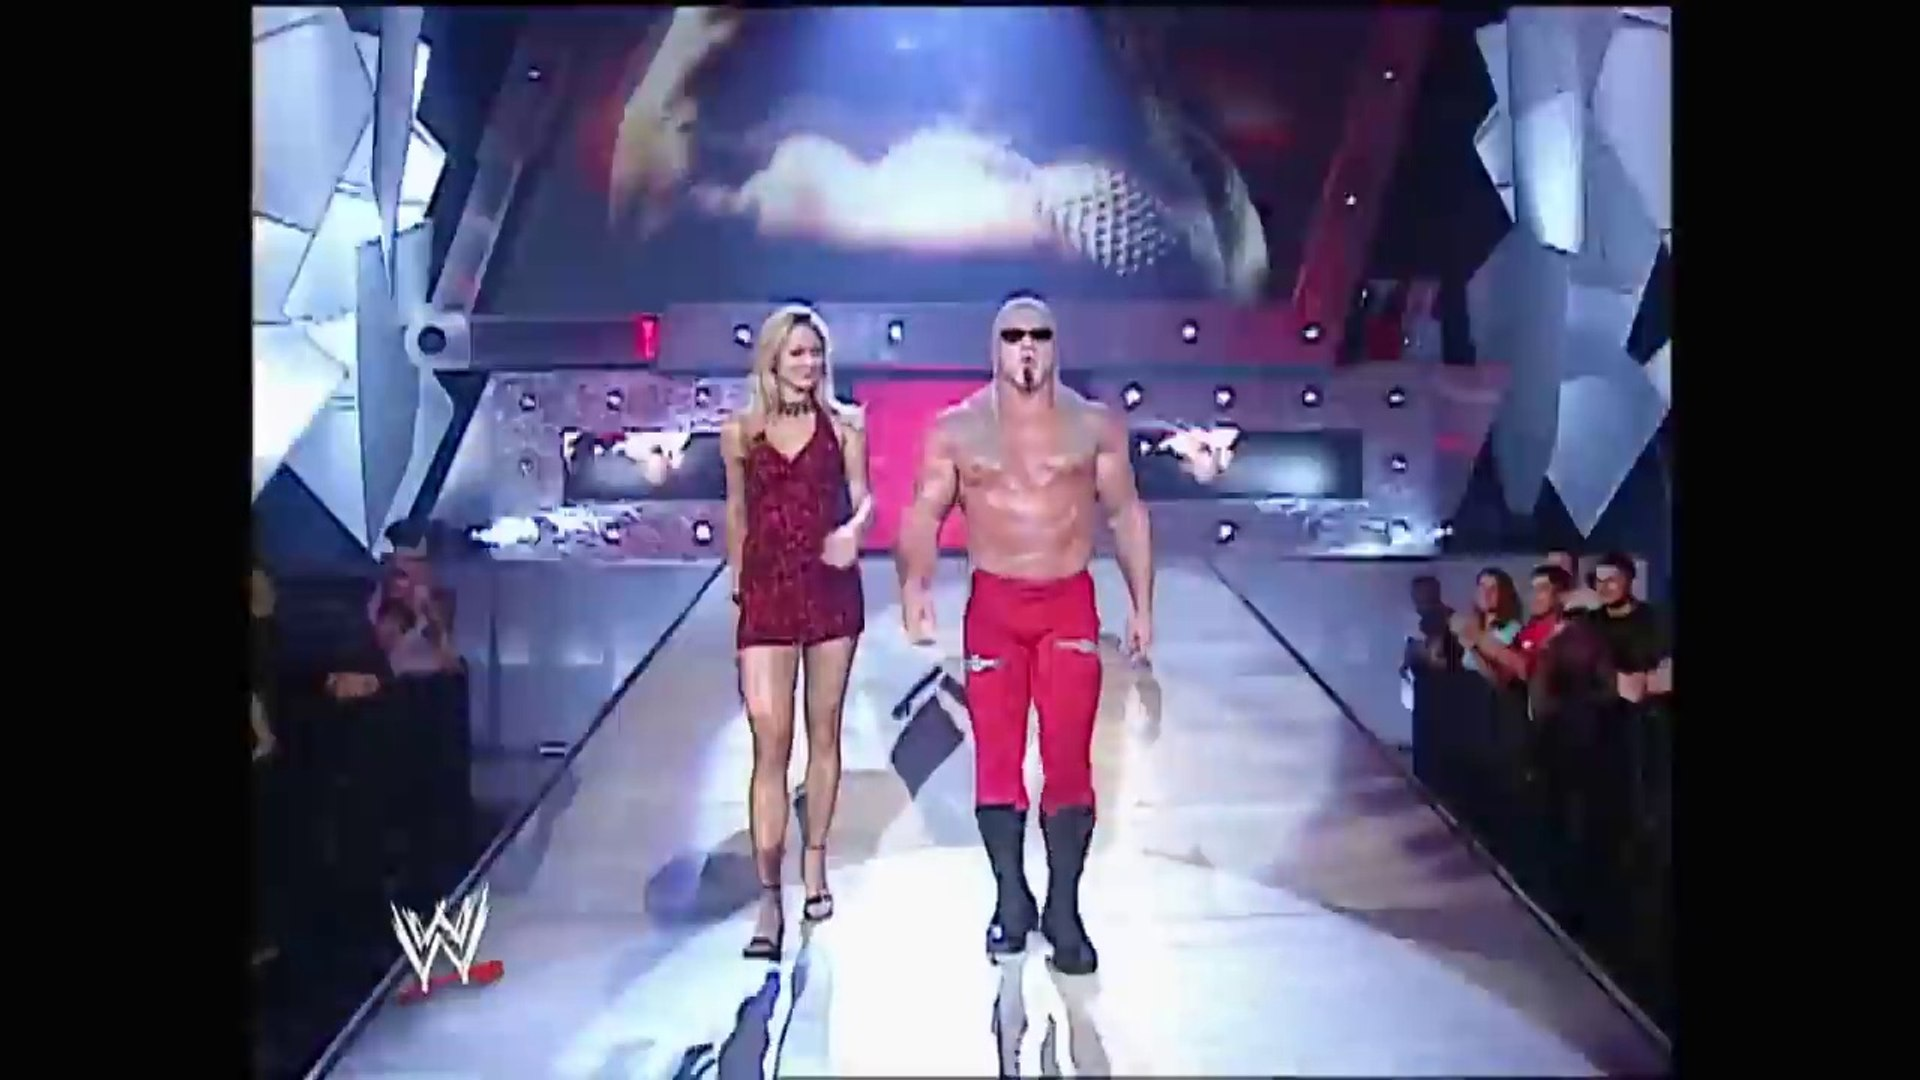 Scott Steiner With Stacy Keibler vs Steven Richards Raw 06.02.2003 by wwe entertainment